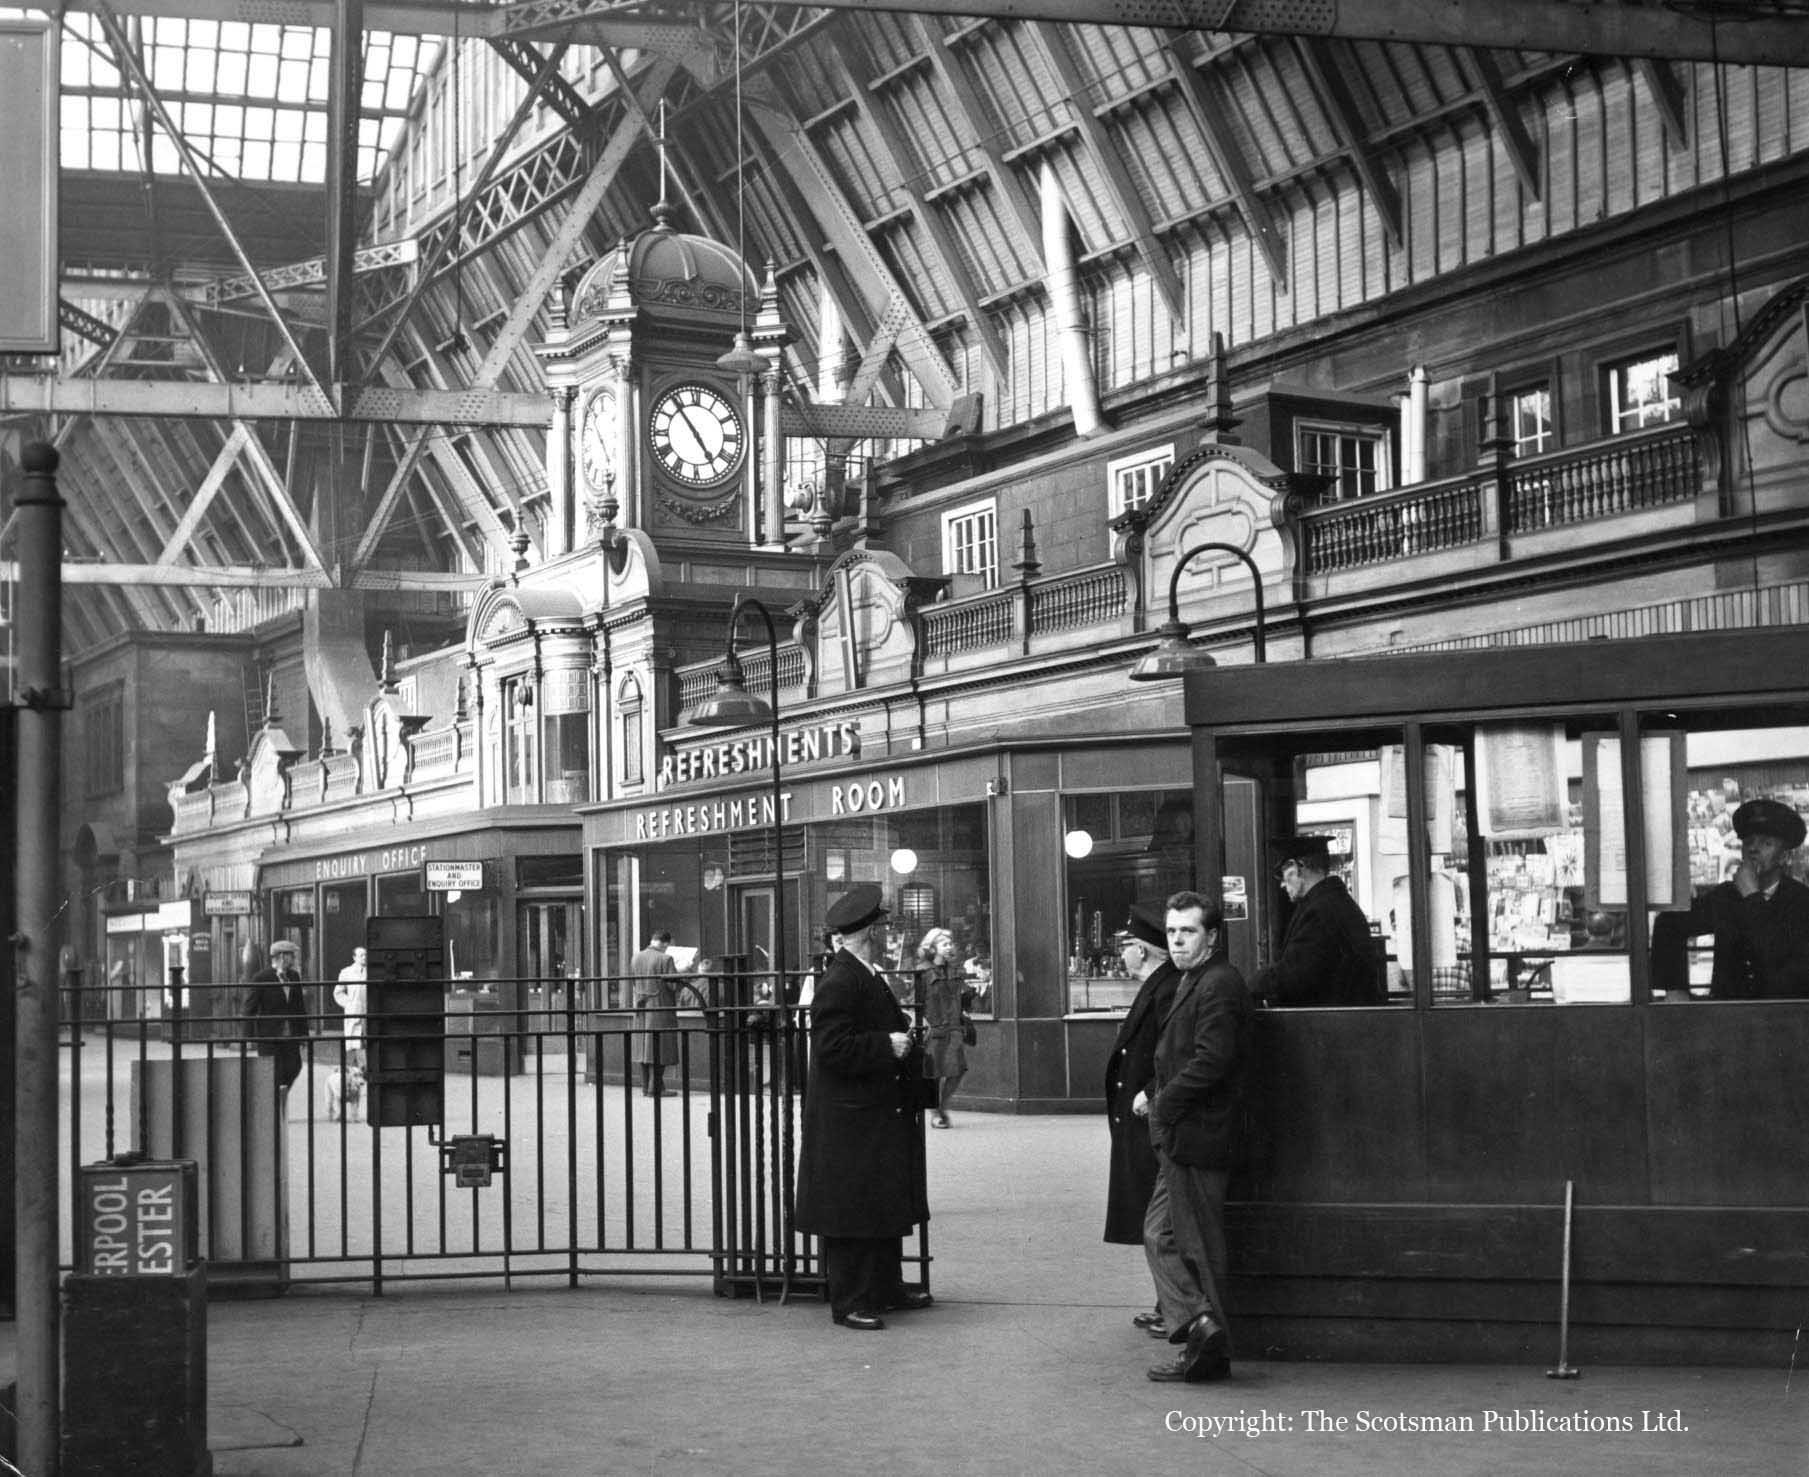 Caledonian Station aka Caley Station Princes Street Edinburgh in 1965.